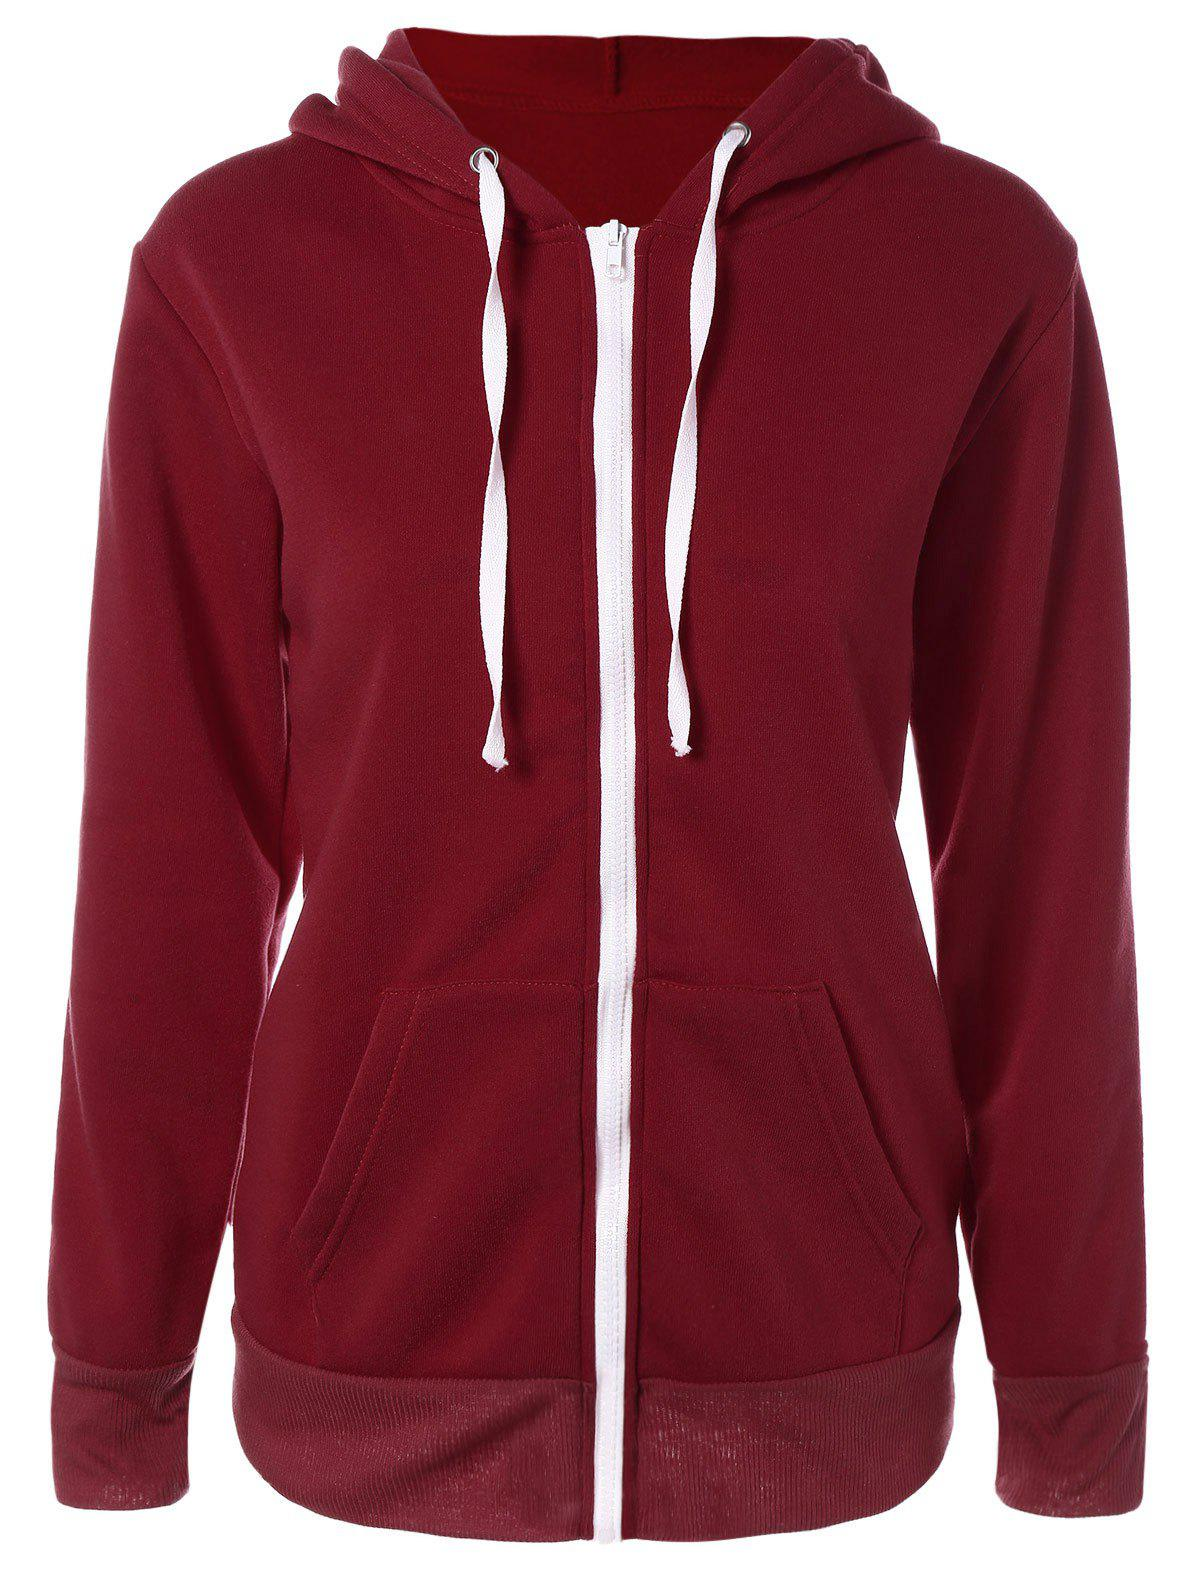 Solid Color Zip Up Fleece Warm HoodieWomen<br><br><br>Size: S<br>Color: WINE RED